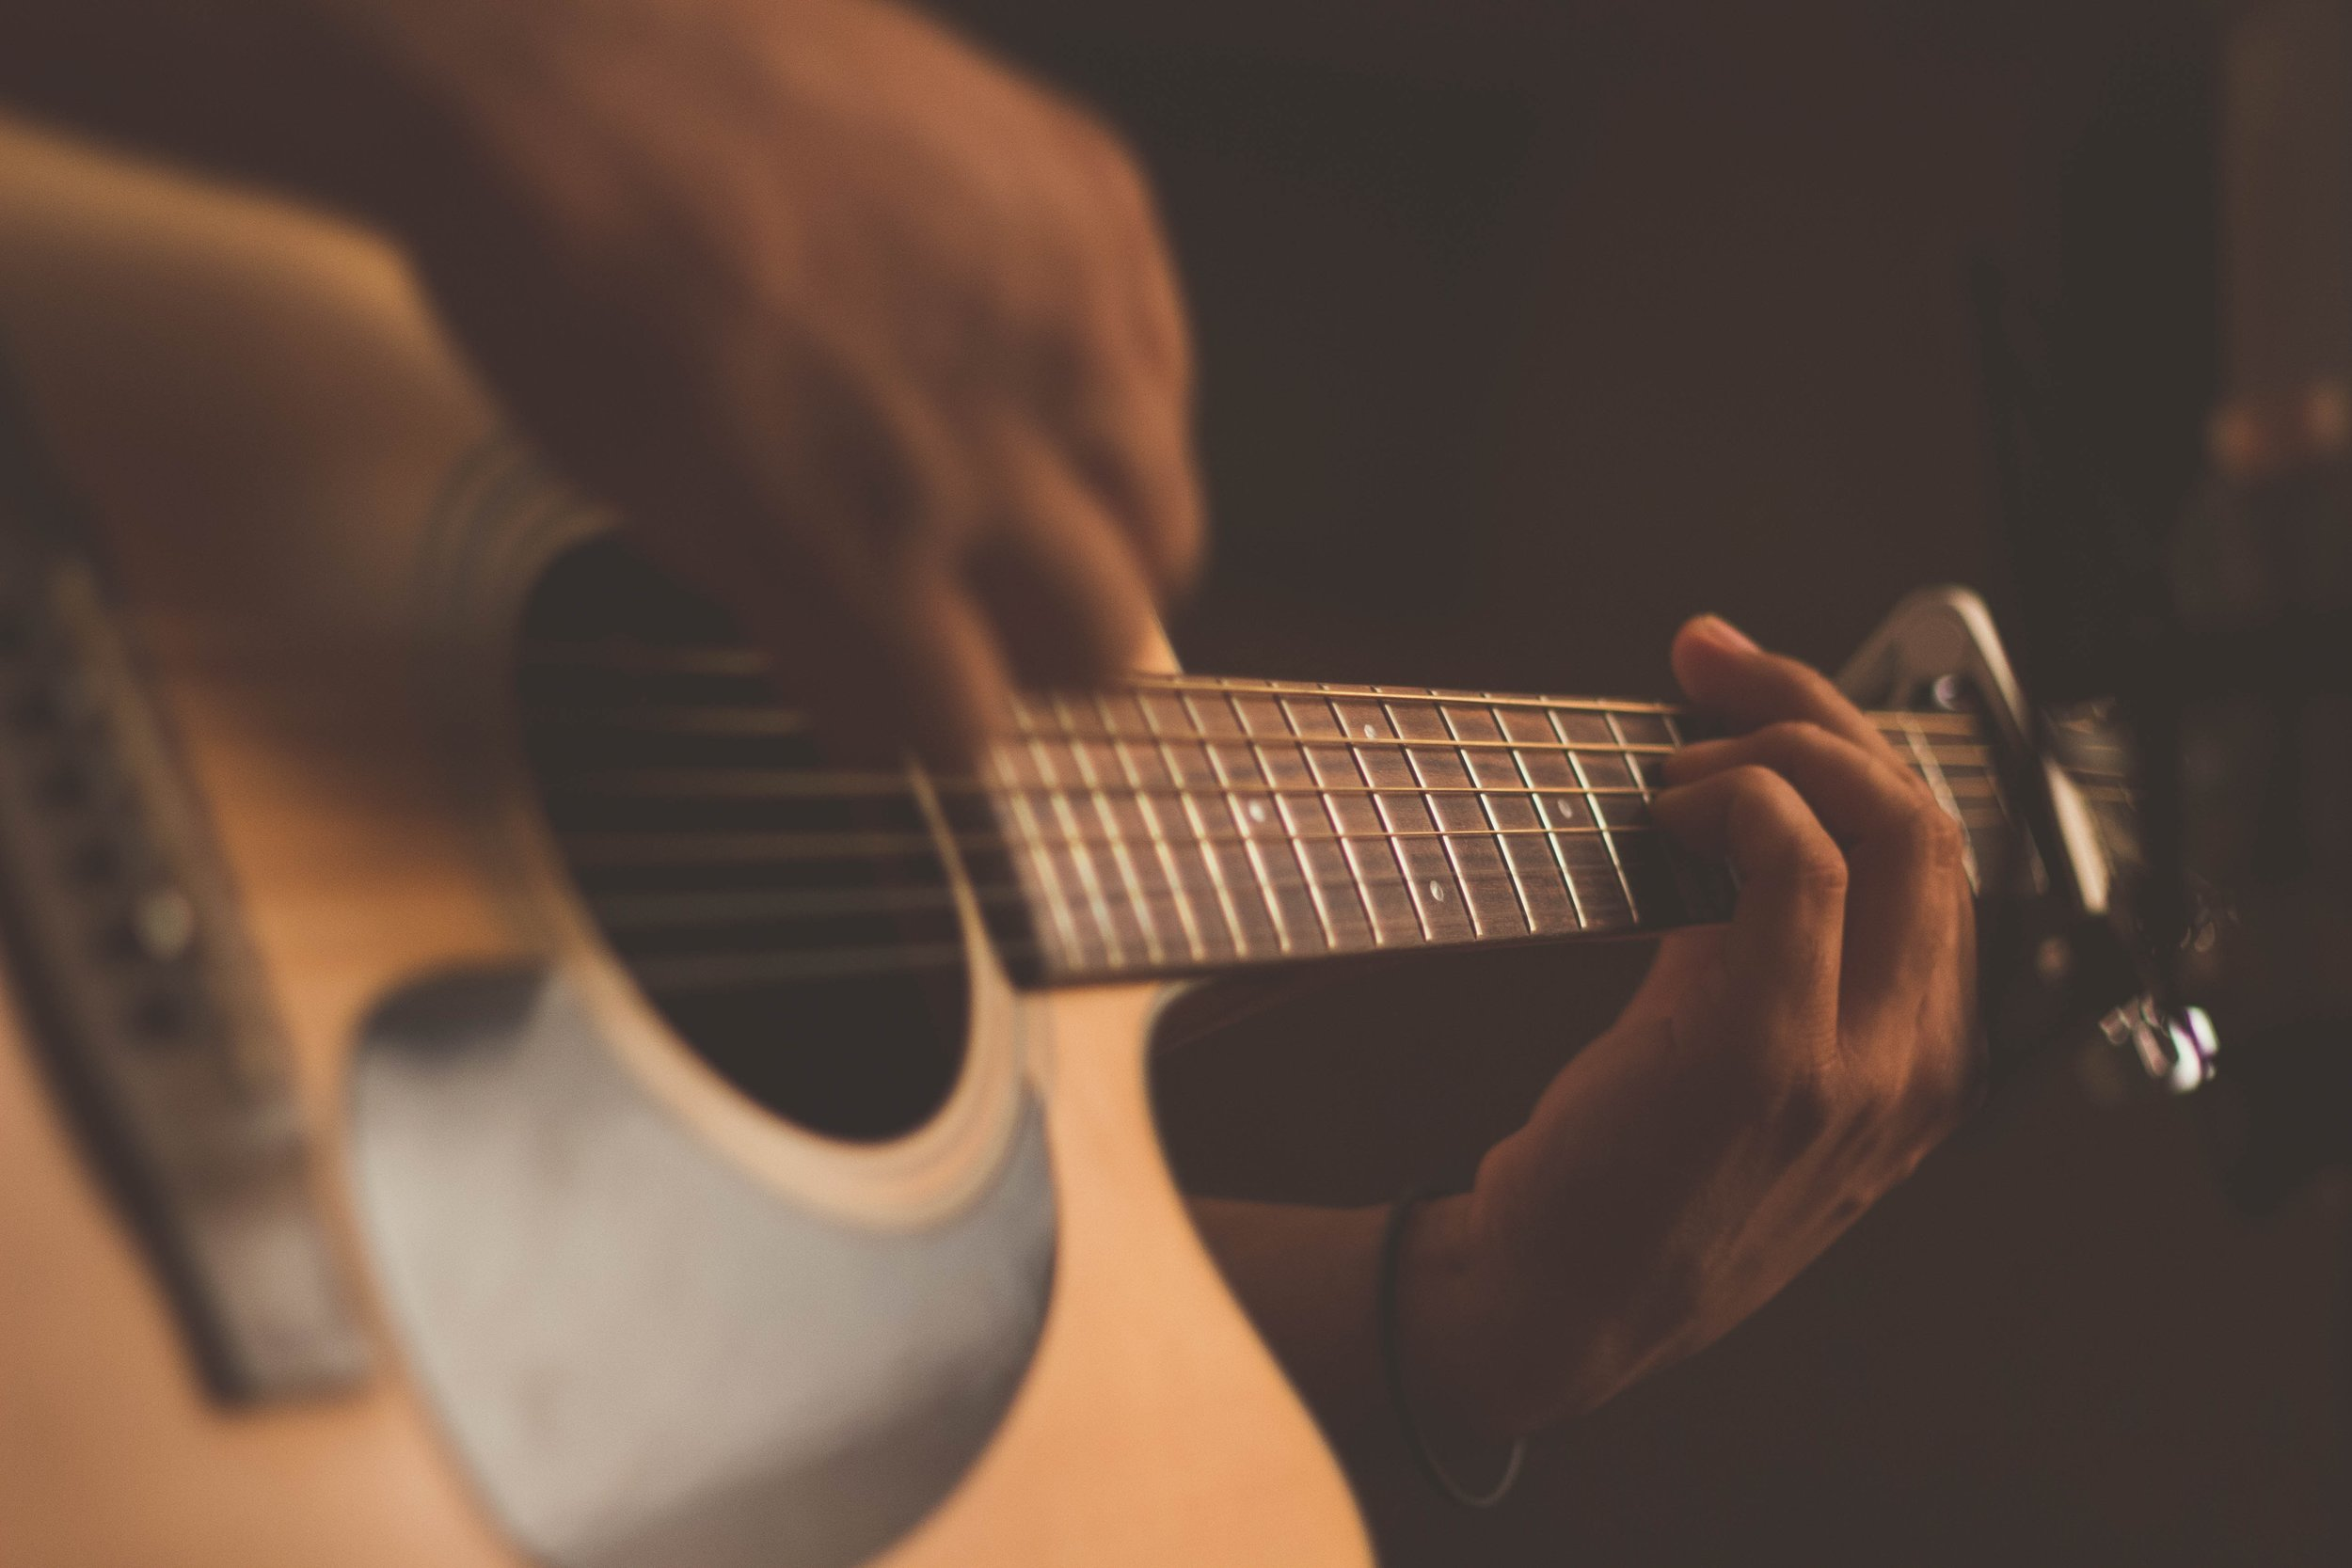 - DepressionStress can cause many people to feel depressed and sad. It can also cause some people to develop eating disorders. Music therapy can help to reverse those feelings and insecurities by decreasing overall stress levels.